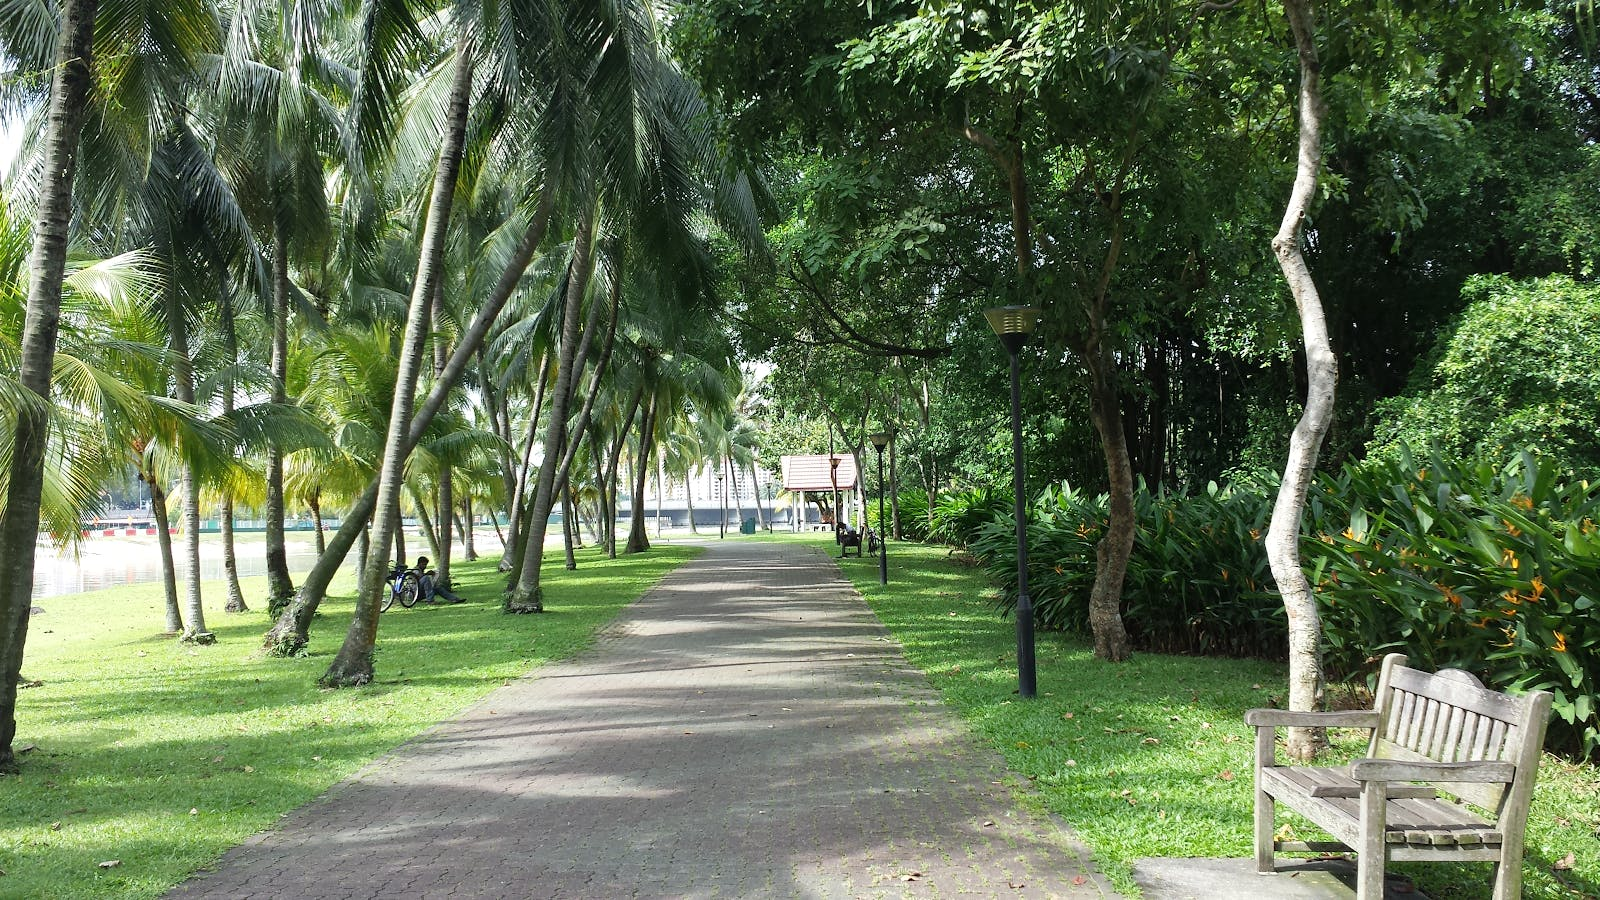 Kallang Riverside Park Jogging Track with shaded trees and sitting bench